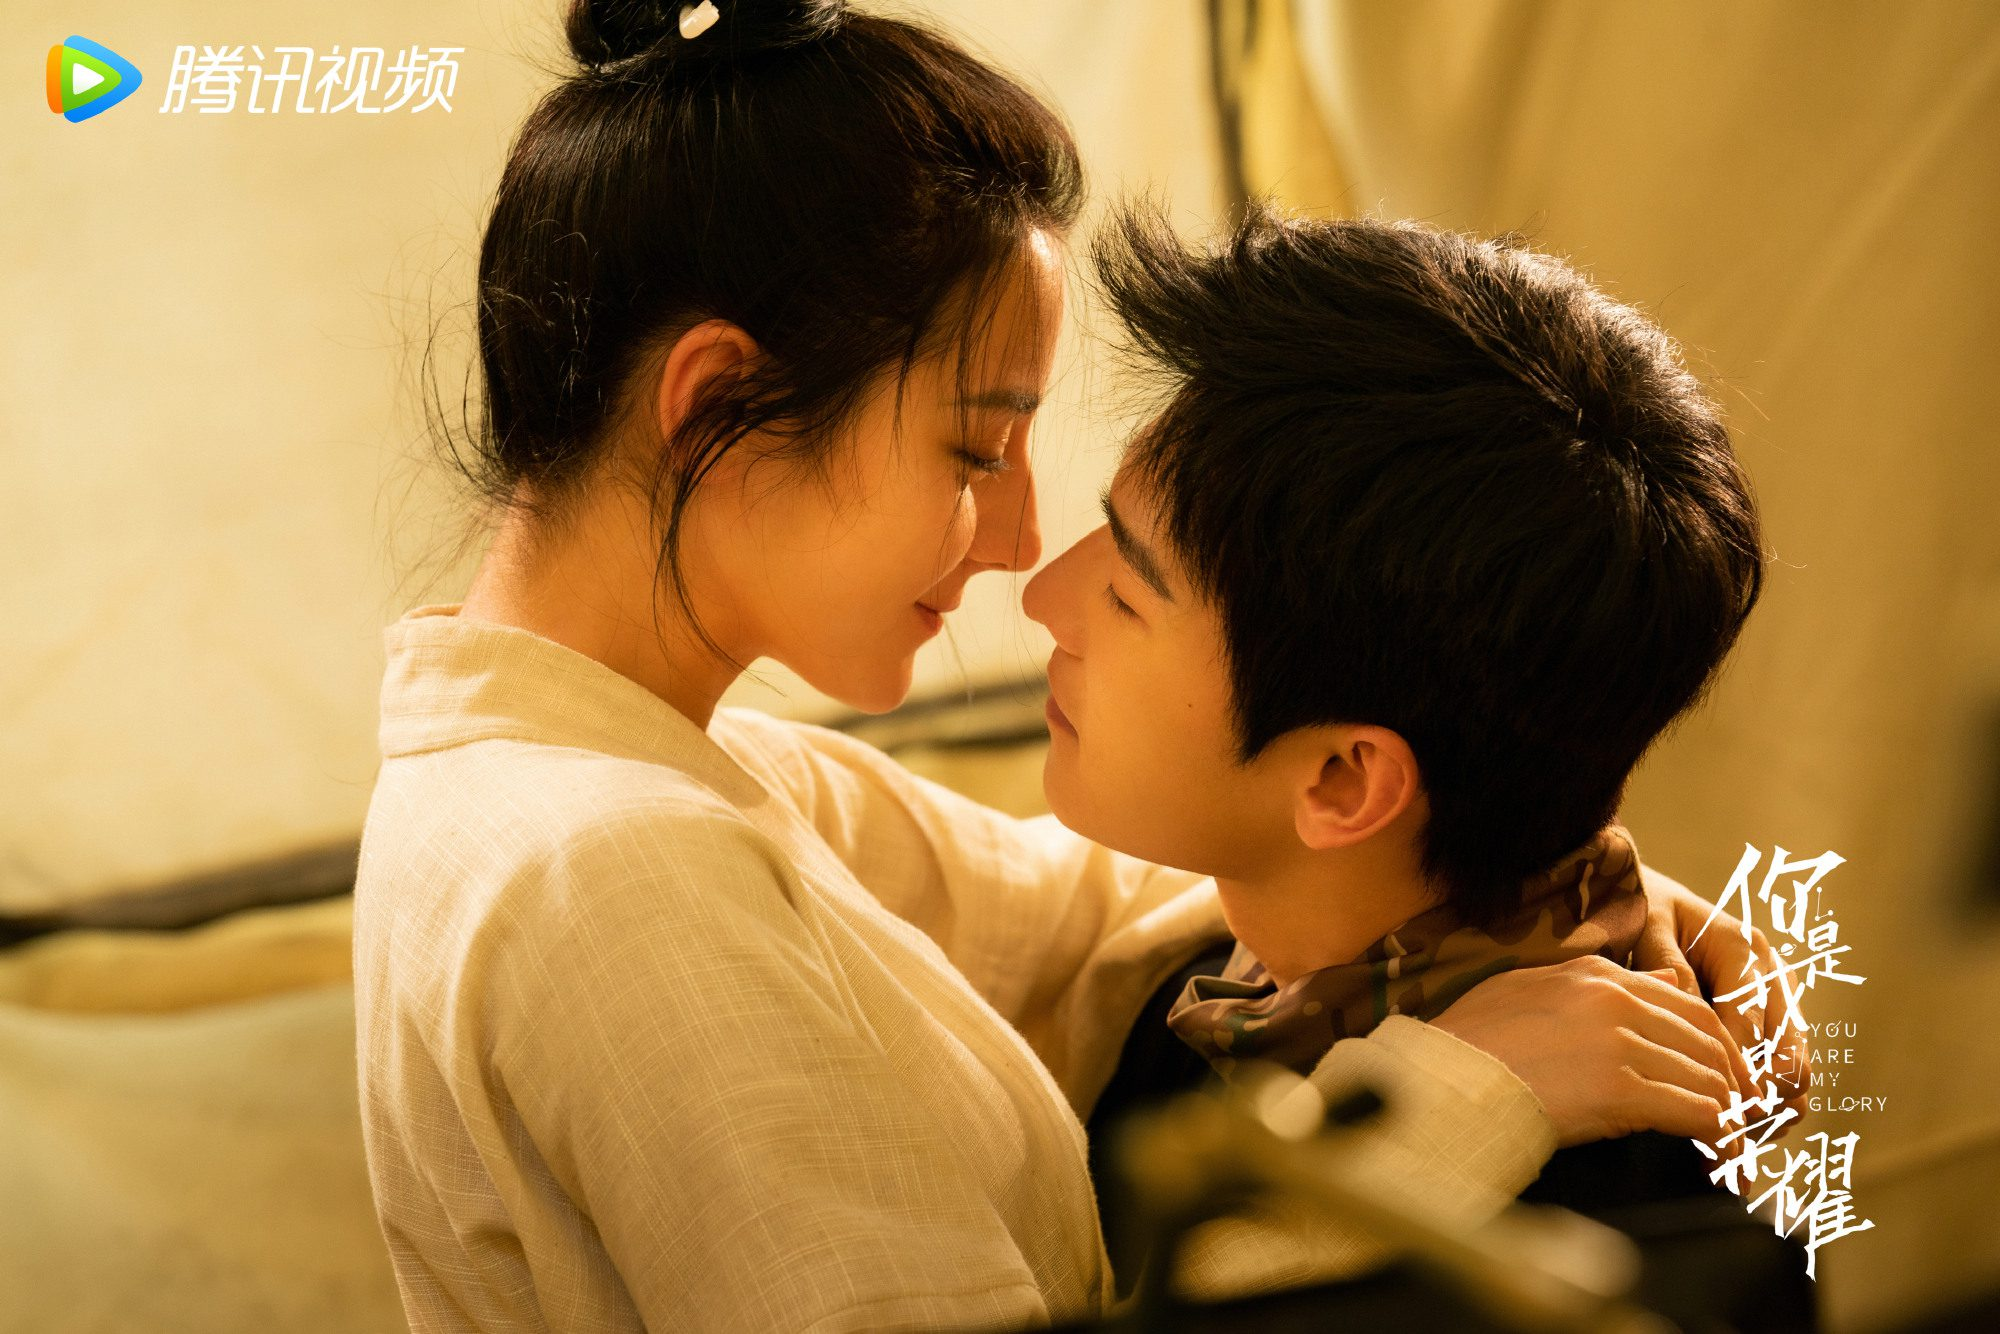 YOU ARE MY GLORY EPISODE 32